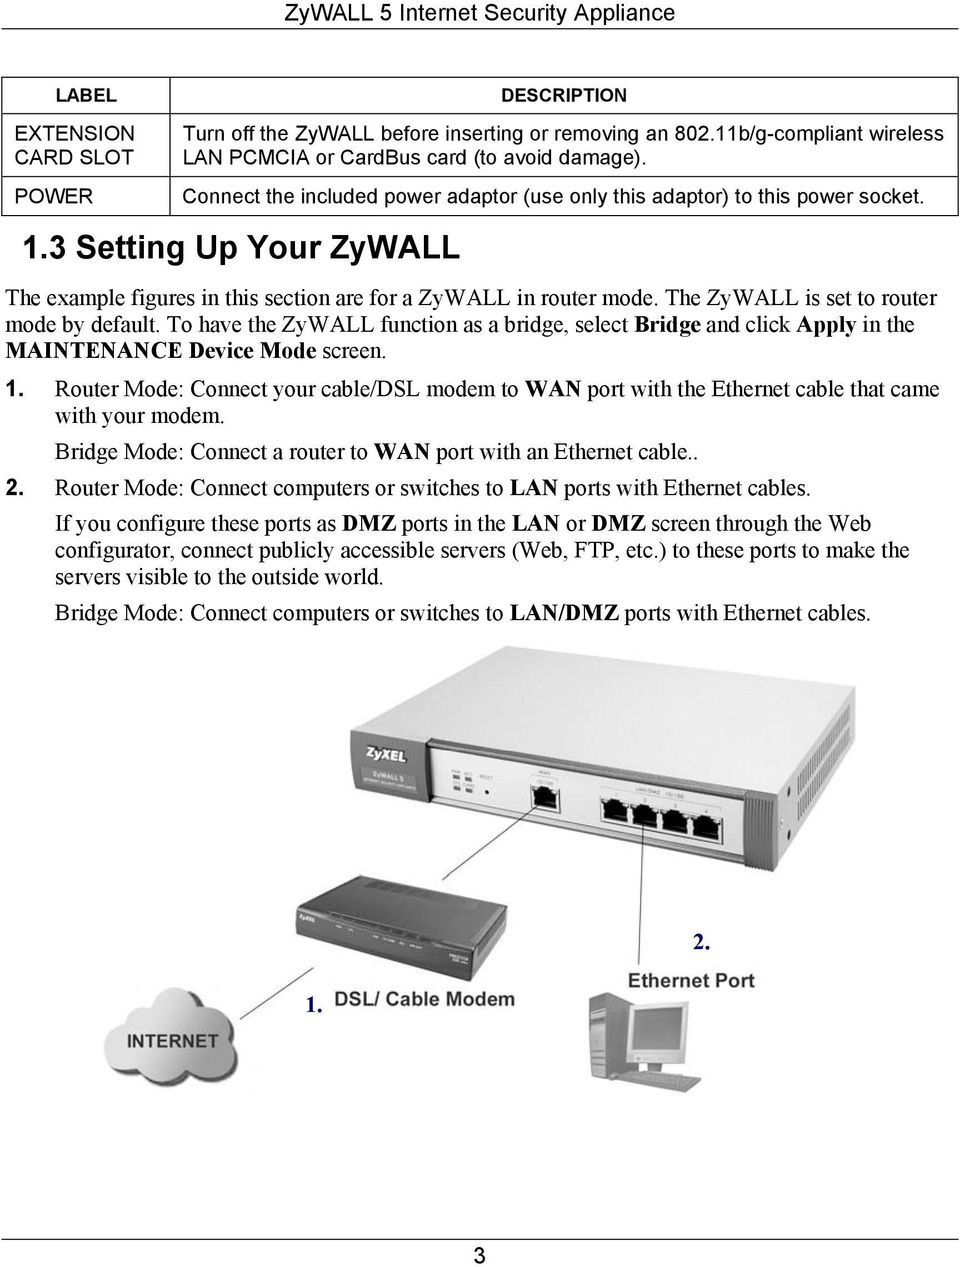 The ZyWALL is set to router mode by default. To have the ZyWALL function as a bridge, select Bridge and click Apply in the MAINTENANCE Device Mode screen. 1.